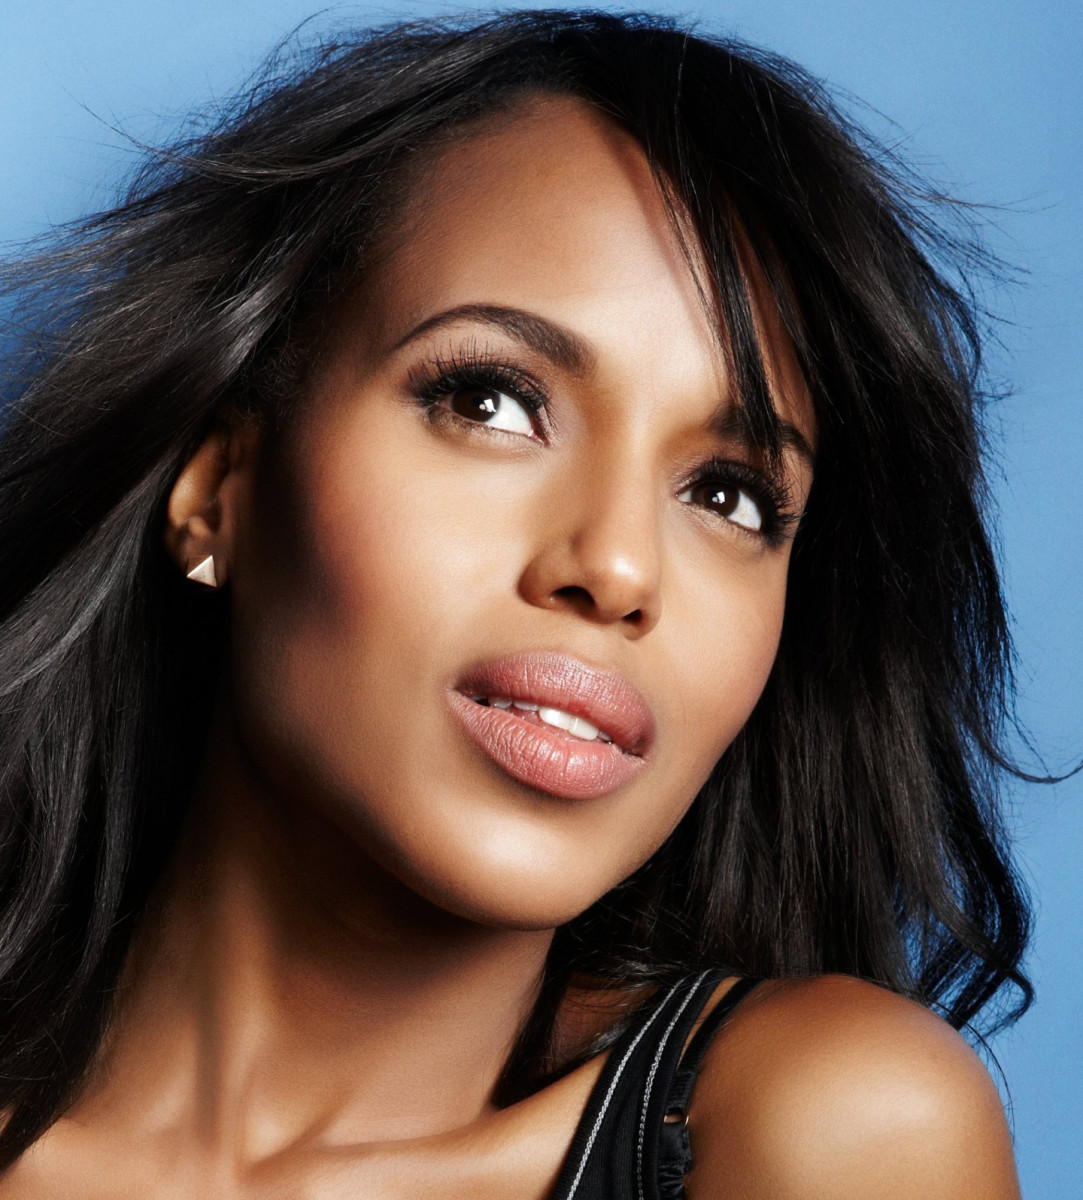 Kerry Washington has just signed with OPI as their new creative ambassador.